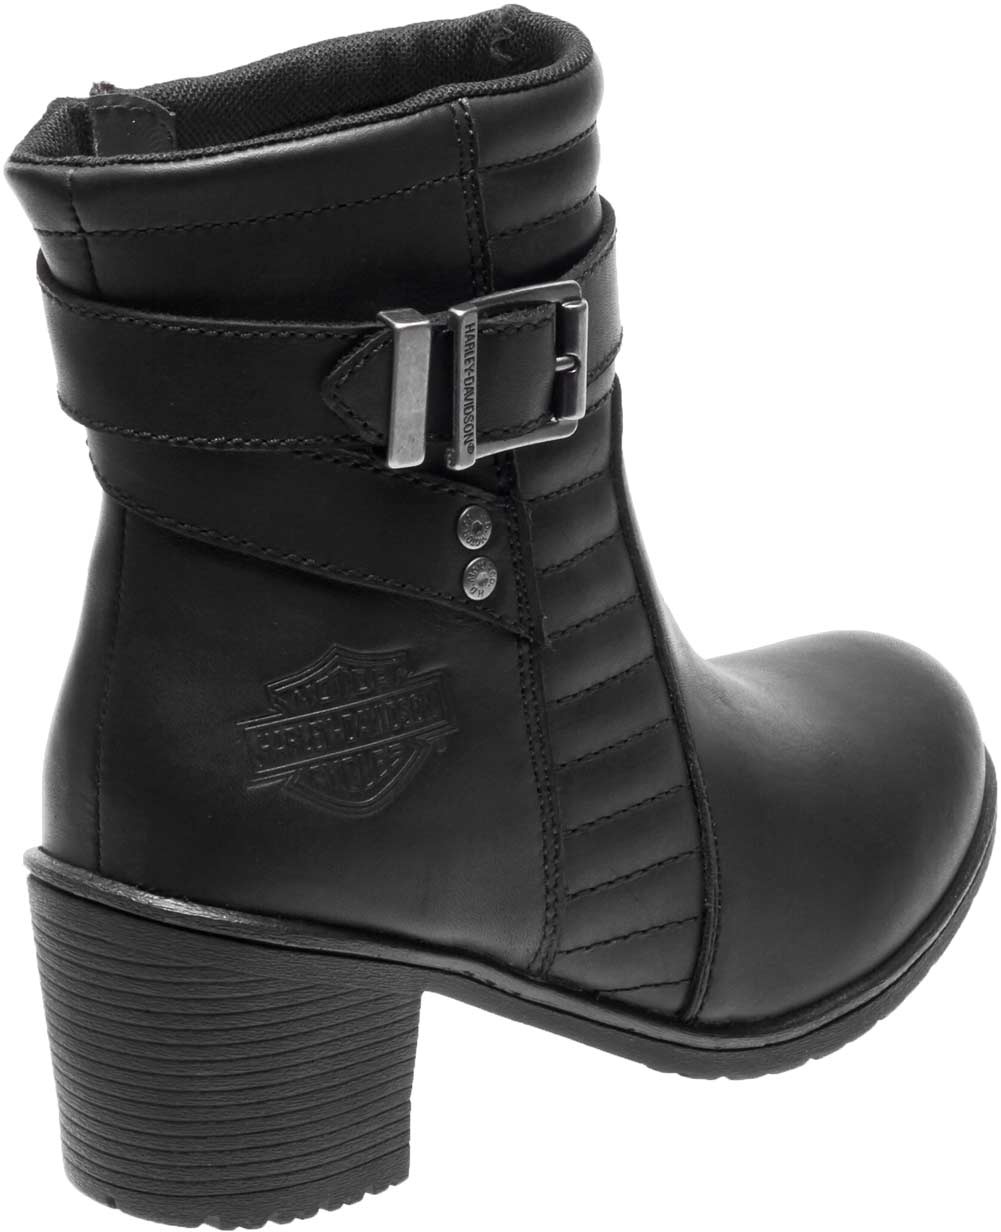 Harley-Davidson Womens Saffron 5-Inch Black Leather Motorcycle Boots D87124